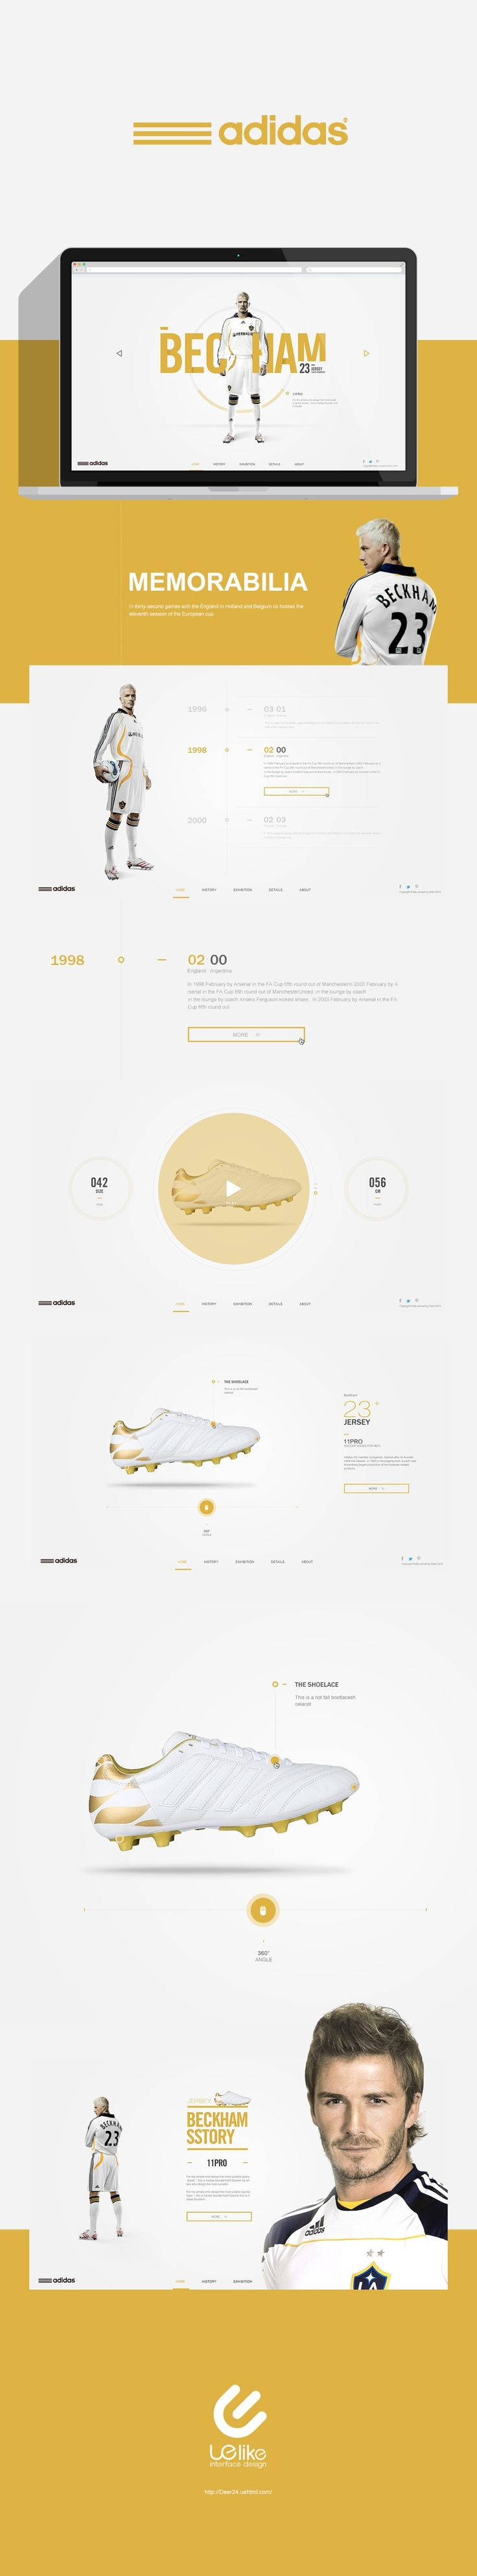 nice way on presenting the 'history' range of a product used by famous people using interactive timeline. This could be good idea for product testimony as well. #webdesign #layout #inspiration